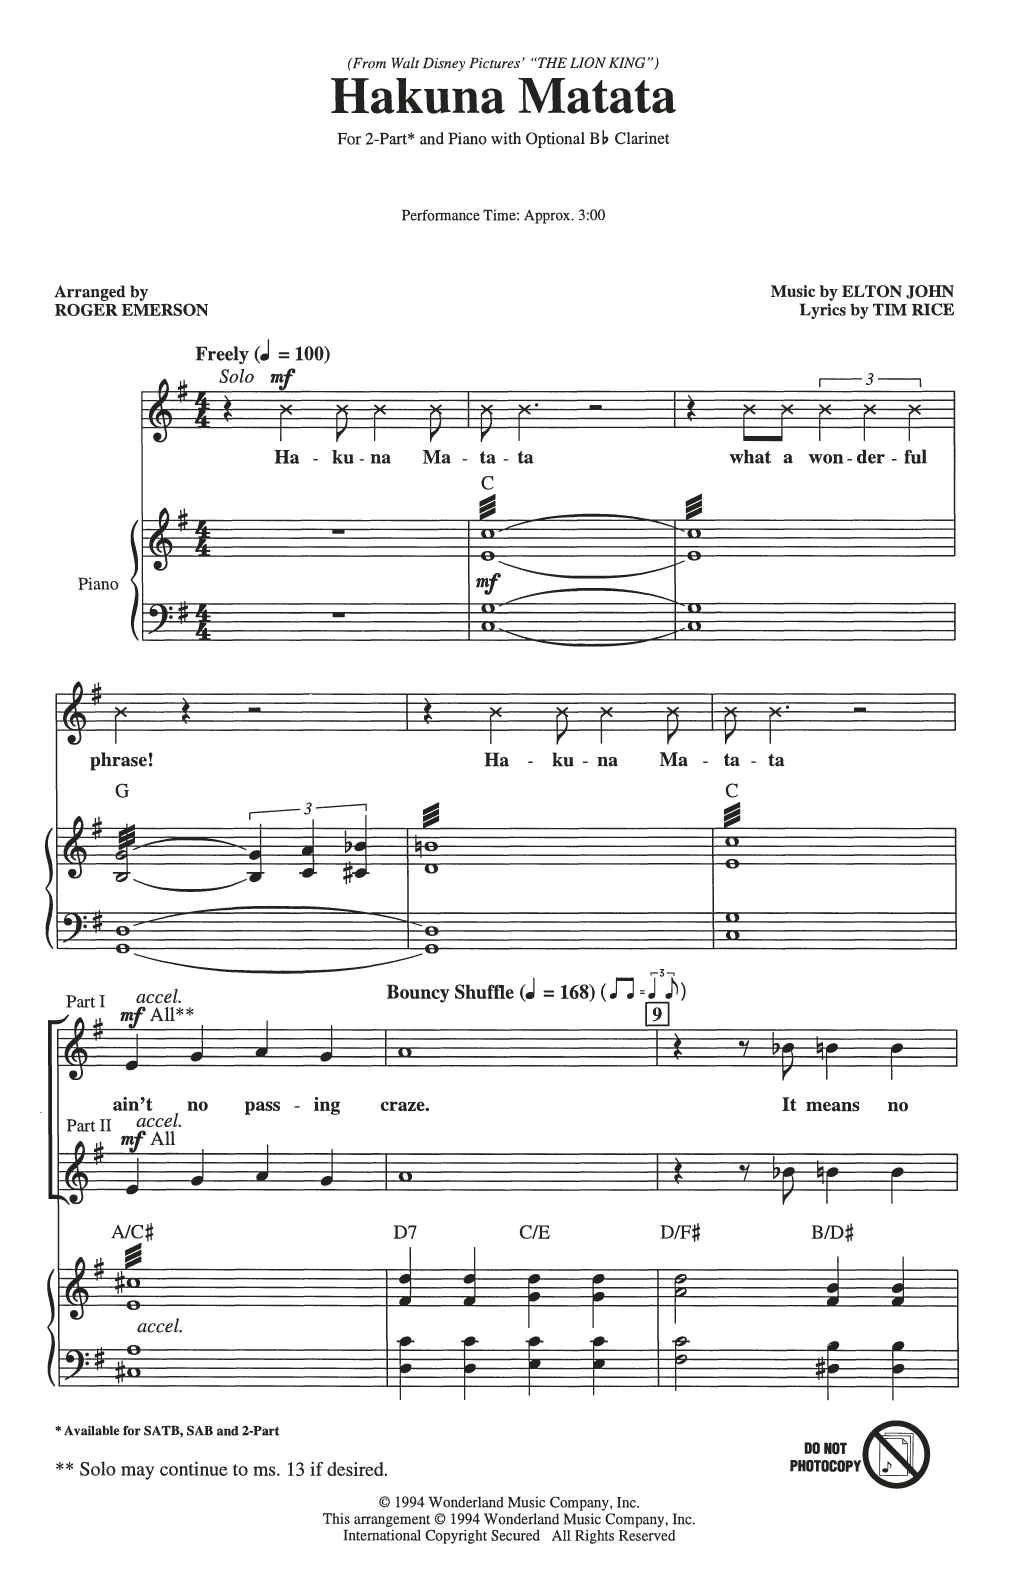 Hakuna Matata (from Disney's The Lion King) (arr. Roger Emerson) Partition Digitale